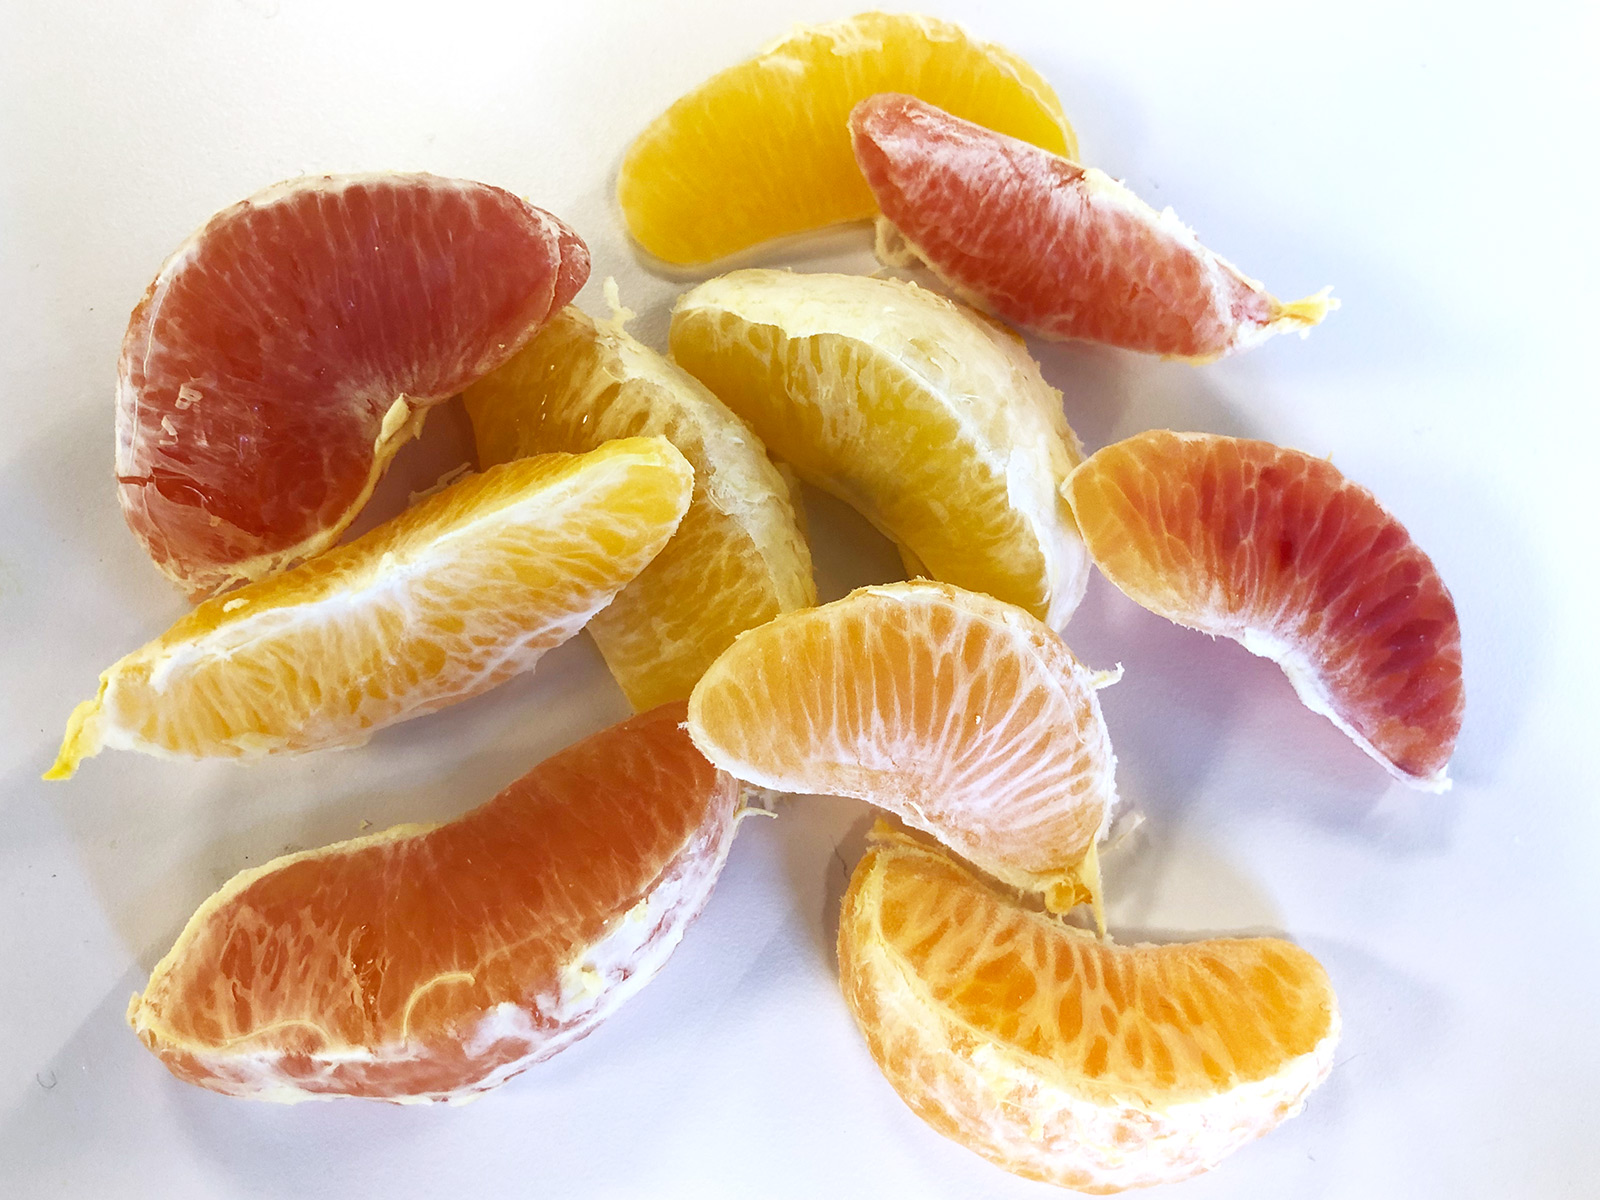 Here's Why You Should Roast Your Oranges